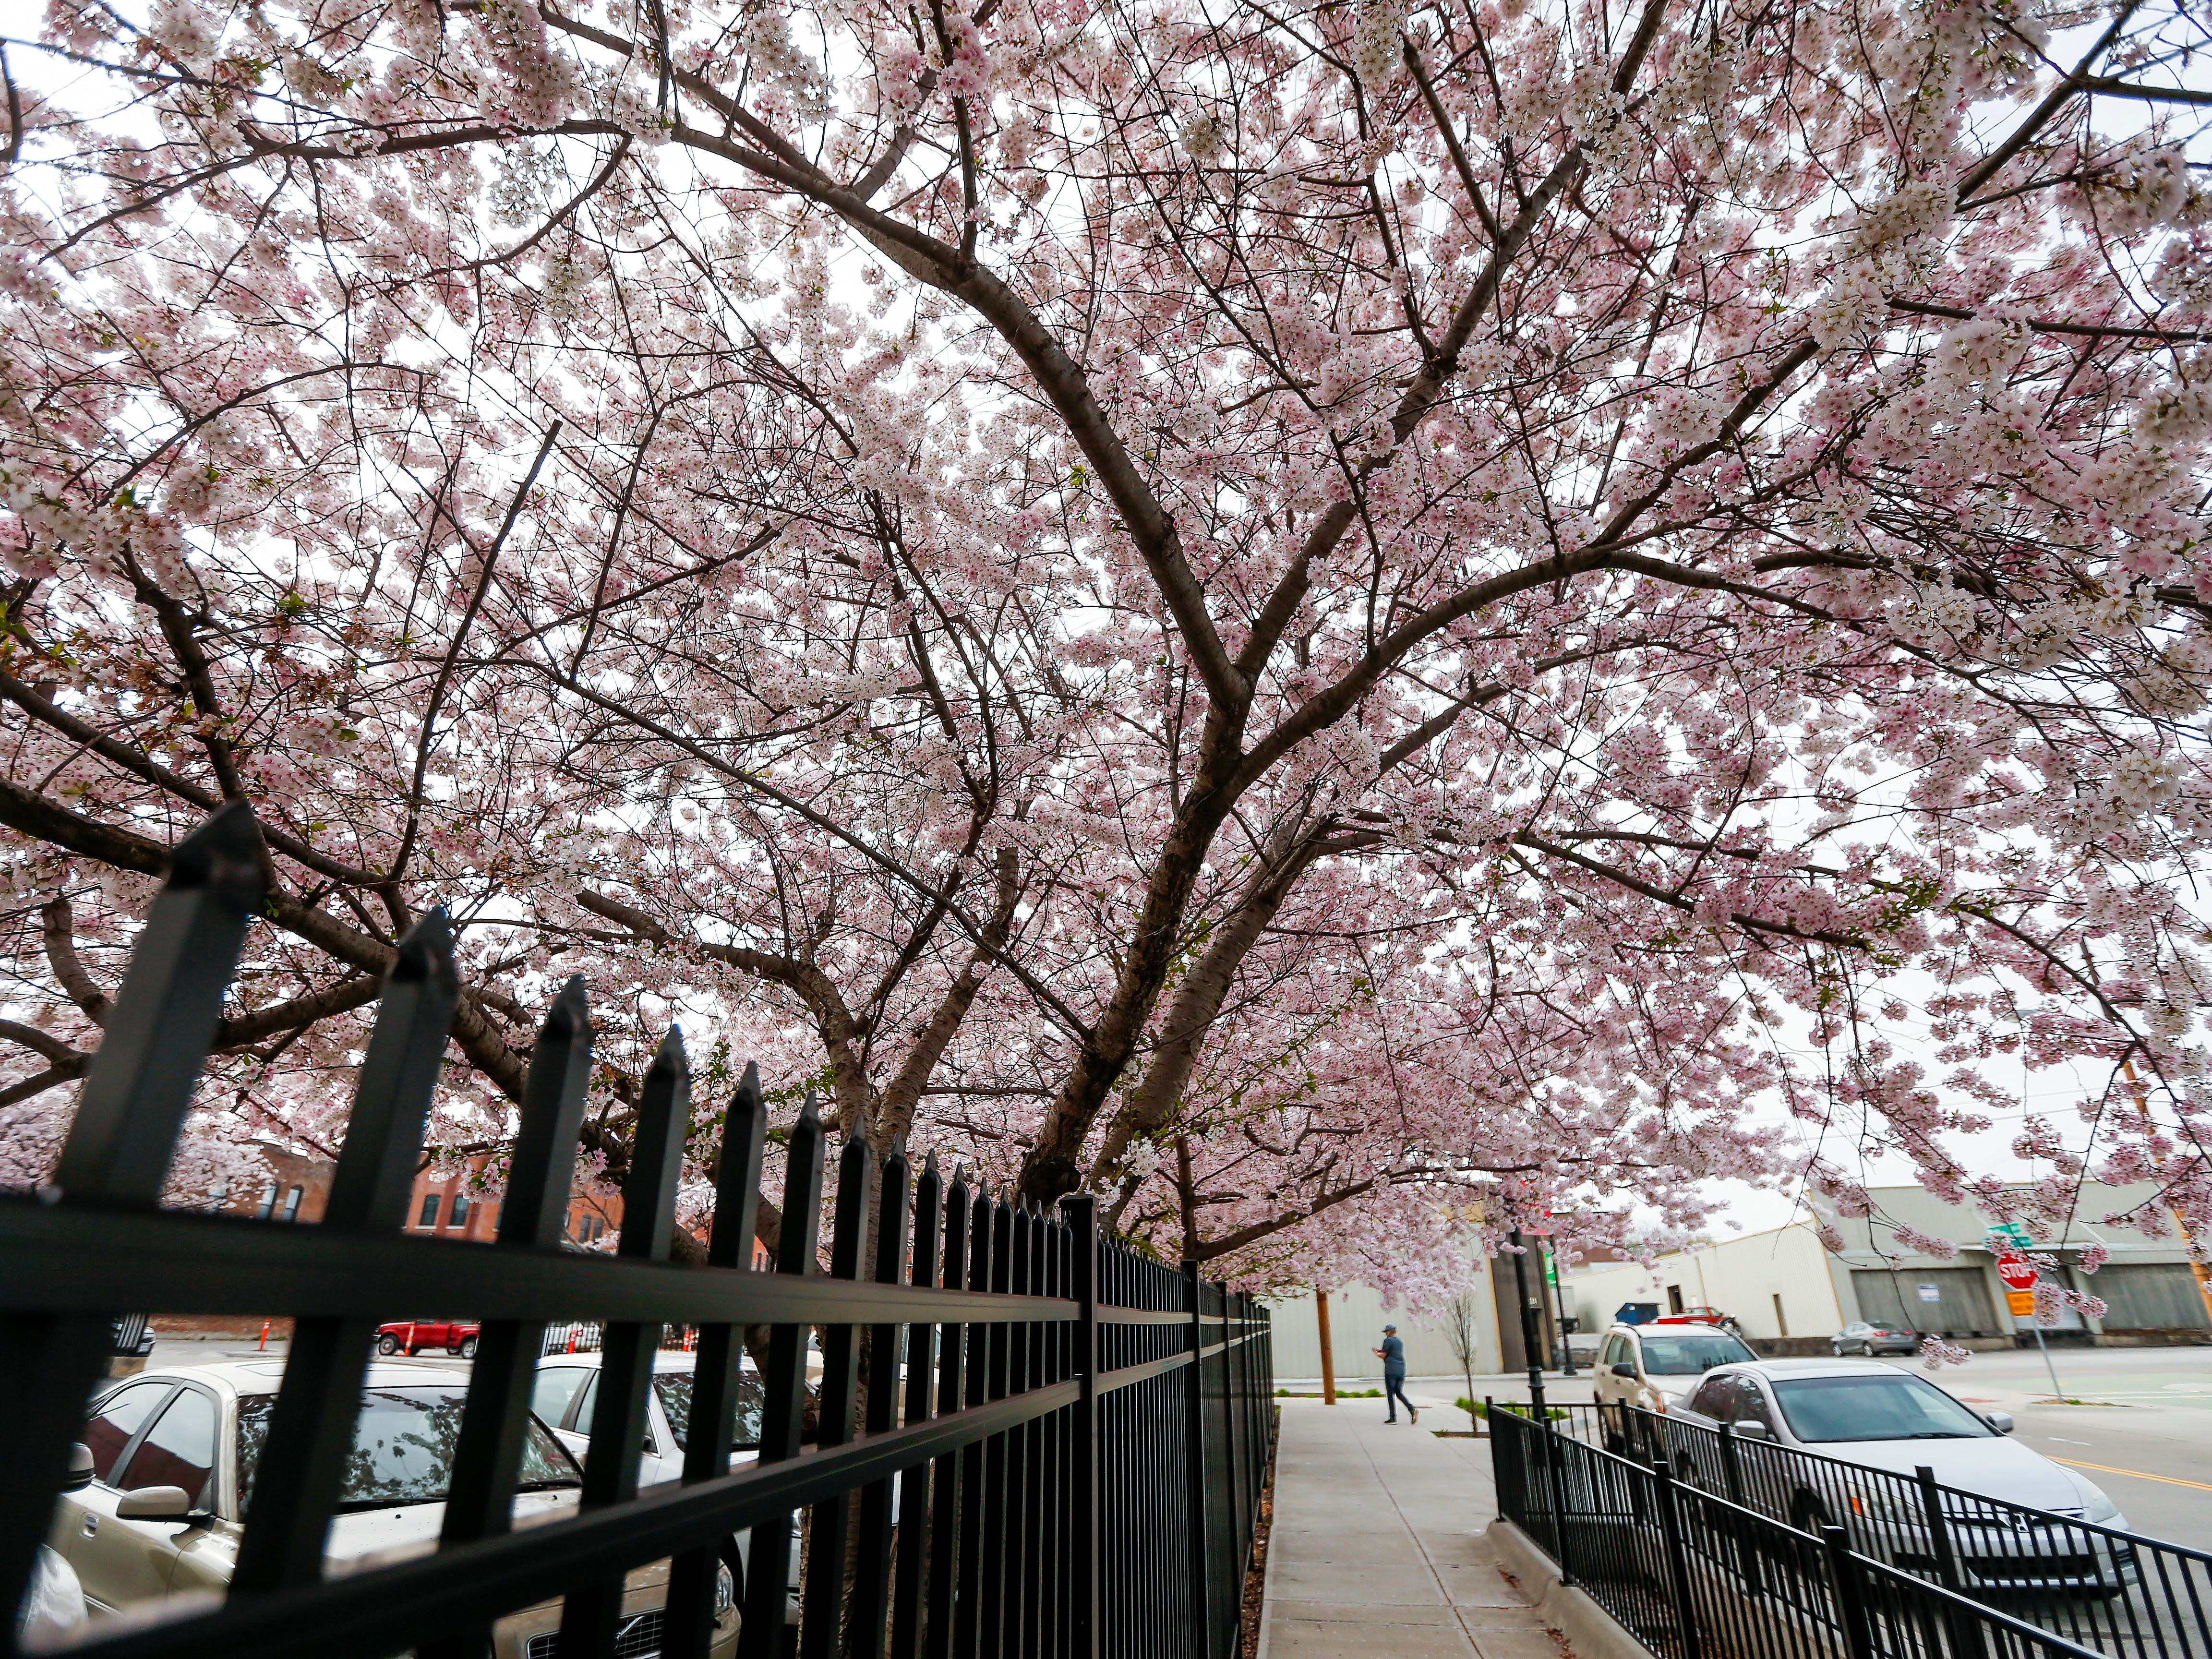 The flowering trees are in bloom at the intersection of College Street and Main Avenue in Downtown Springfield.